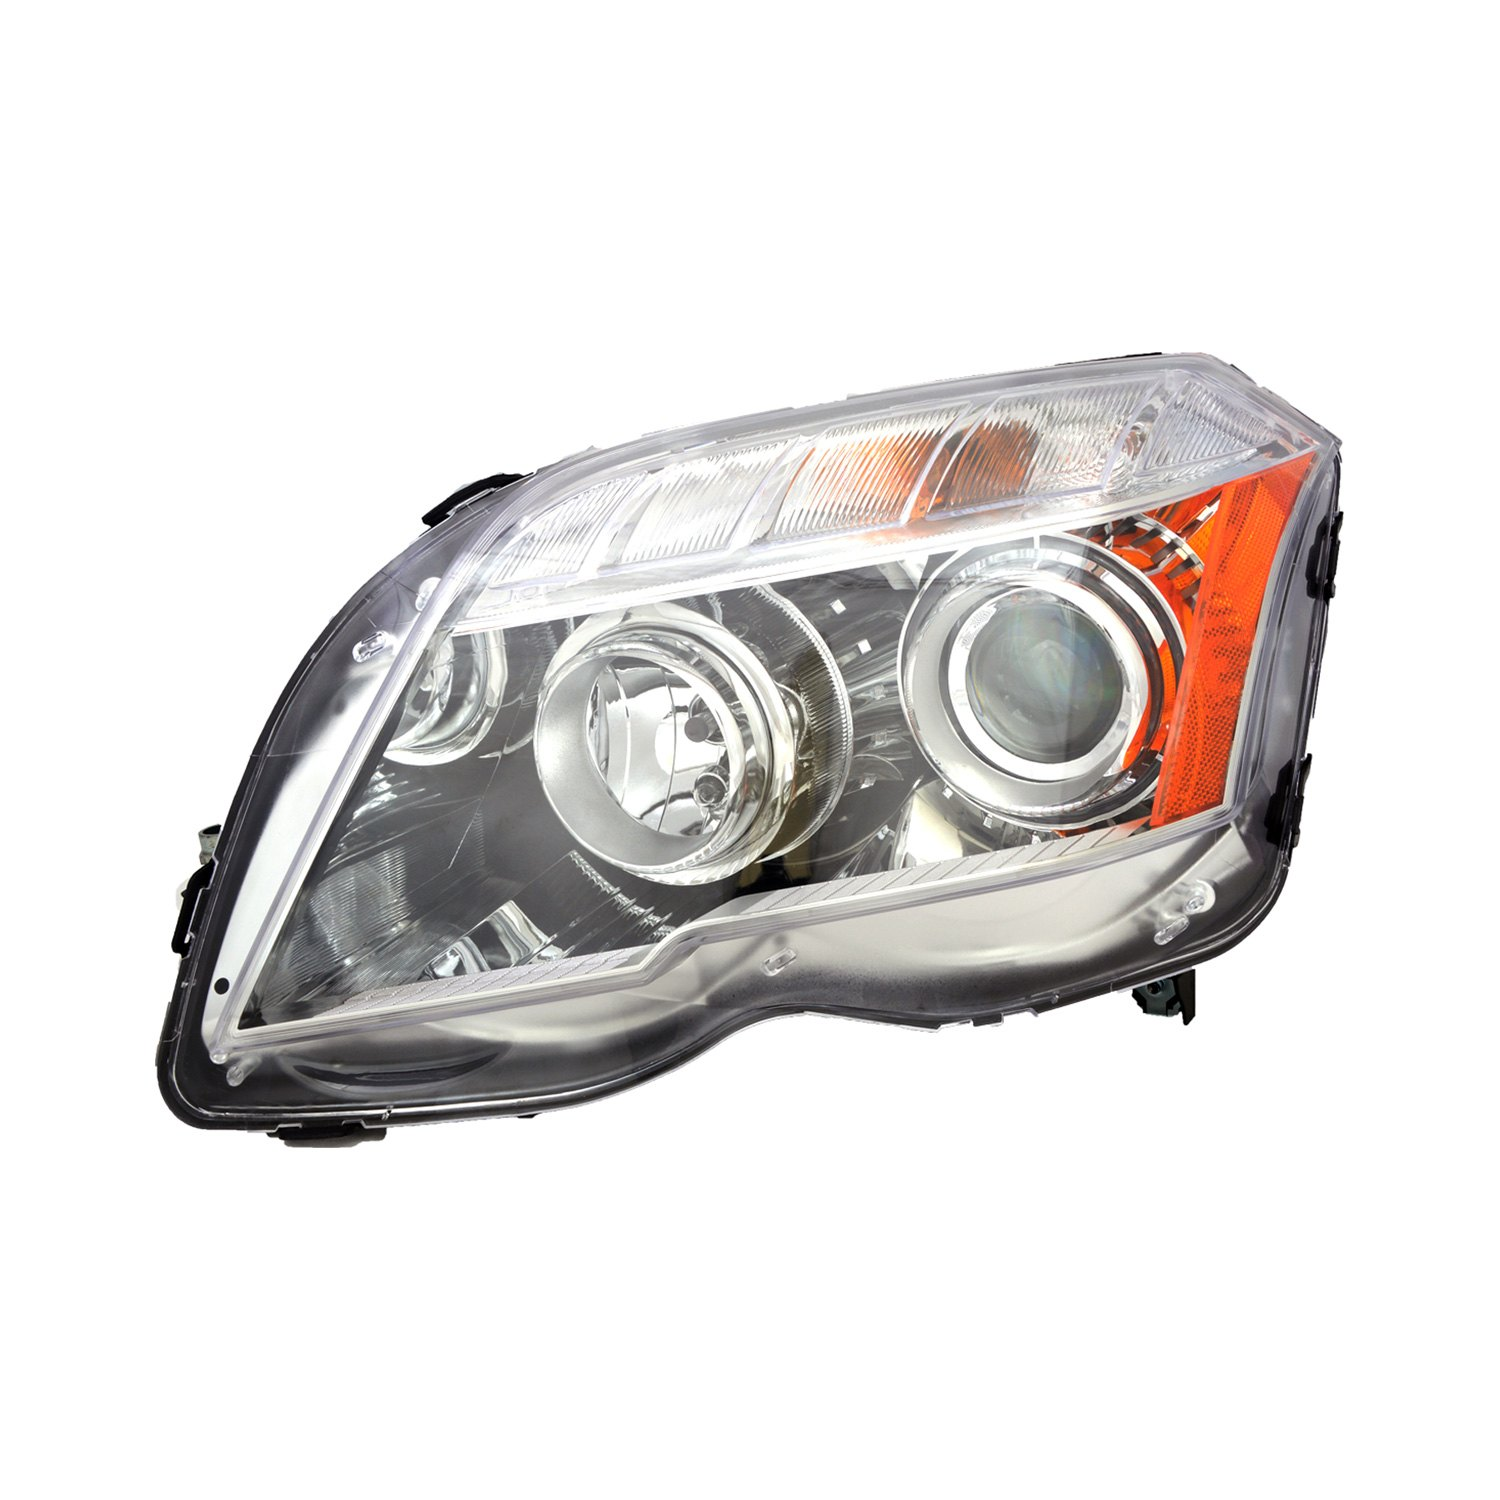 Replace mercedes glk350 with factory halogen headlights for Mercedes benz headlight replacement